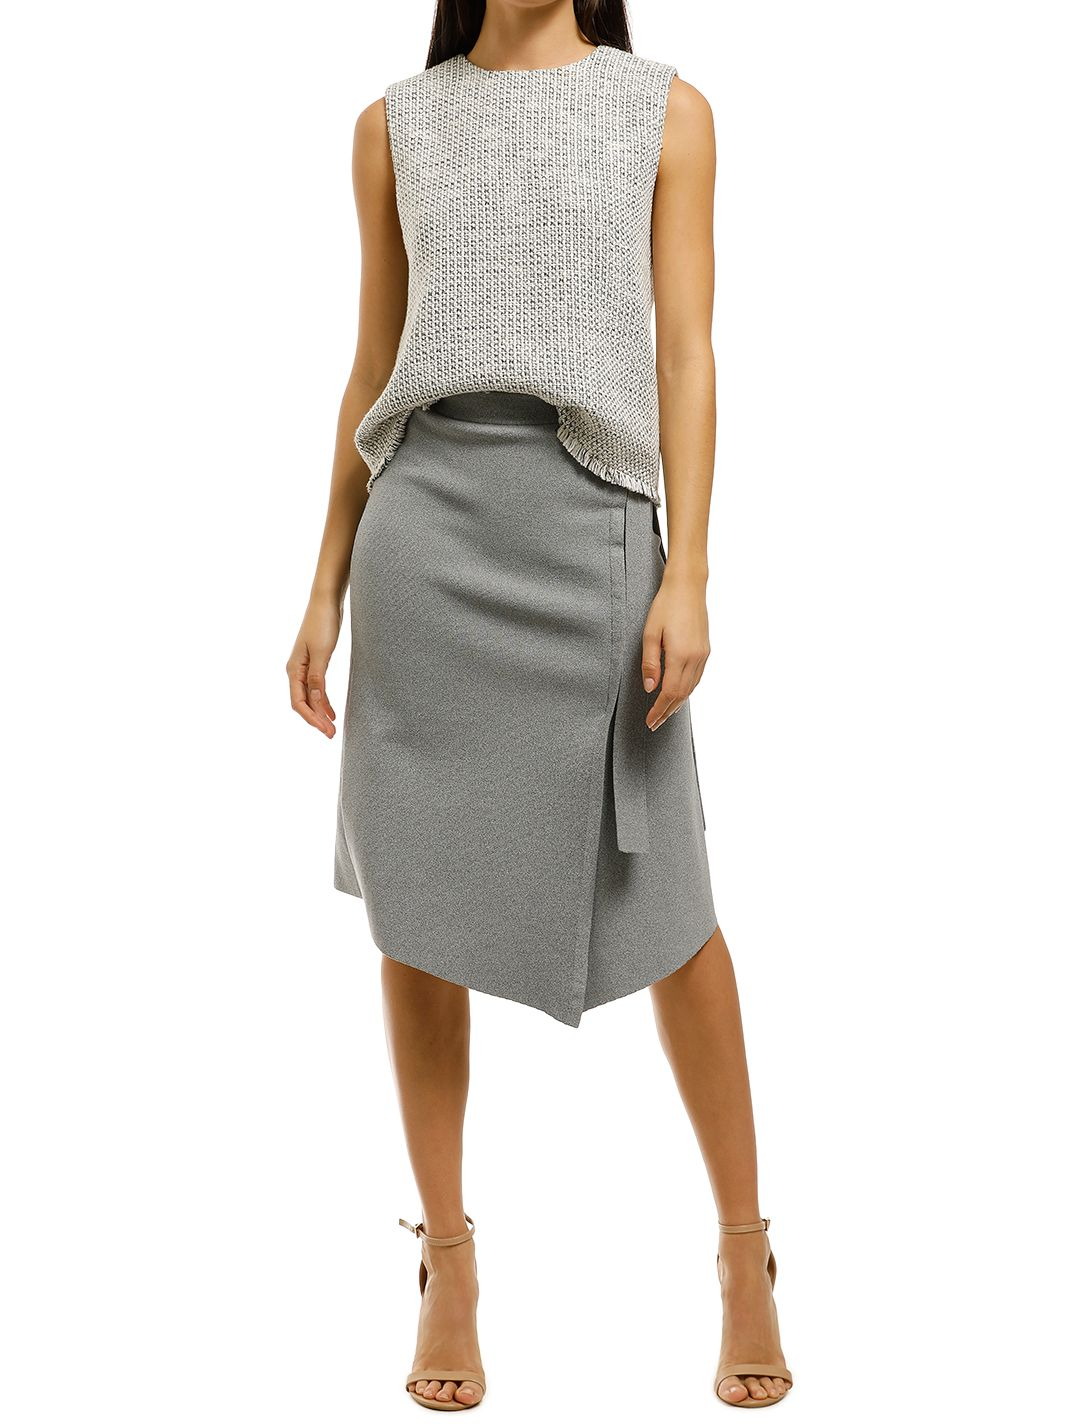 FWRD-The-Label-Alena-Crepe-Knit-Skirt-Grey-Front